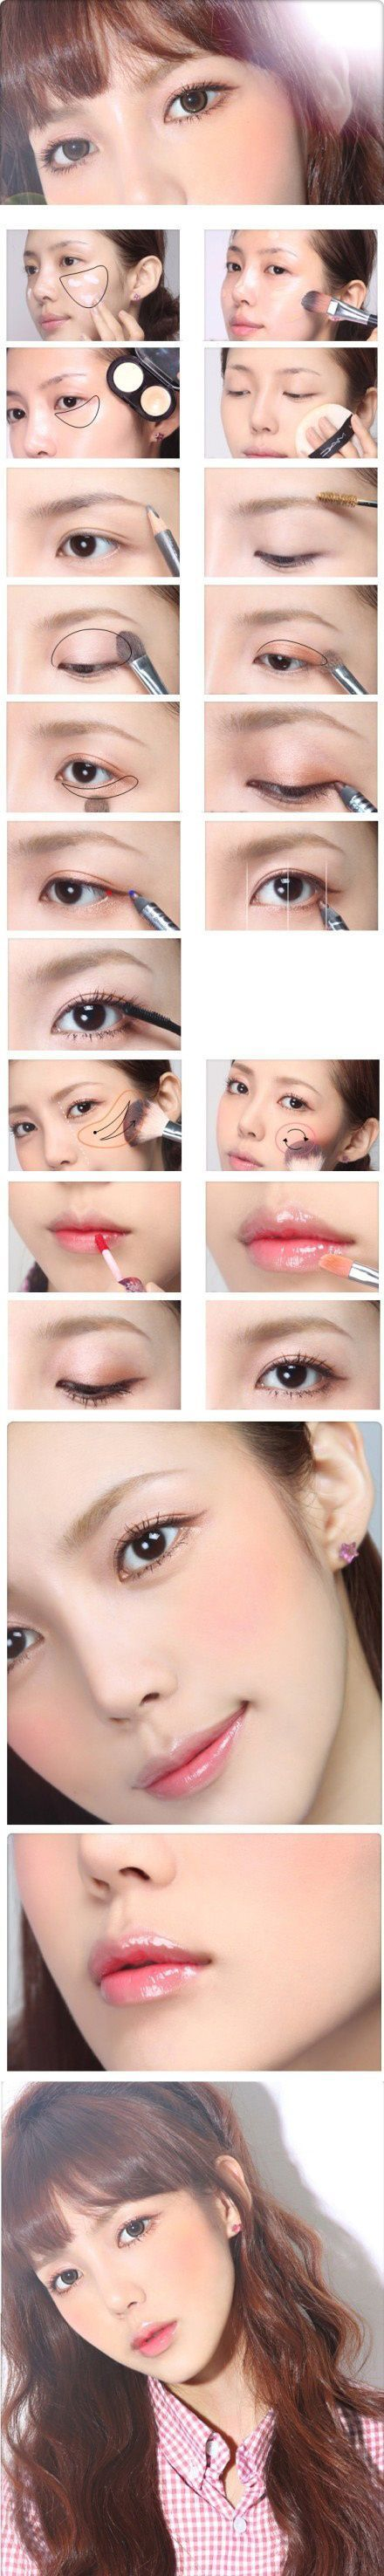 Cosplay makeup tutorial cosplayers guide to flawless skin with cosplay makeup tutorial cosplayers guide to flawless skin with make up everyday makeup look baditri Gallery